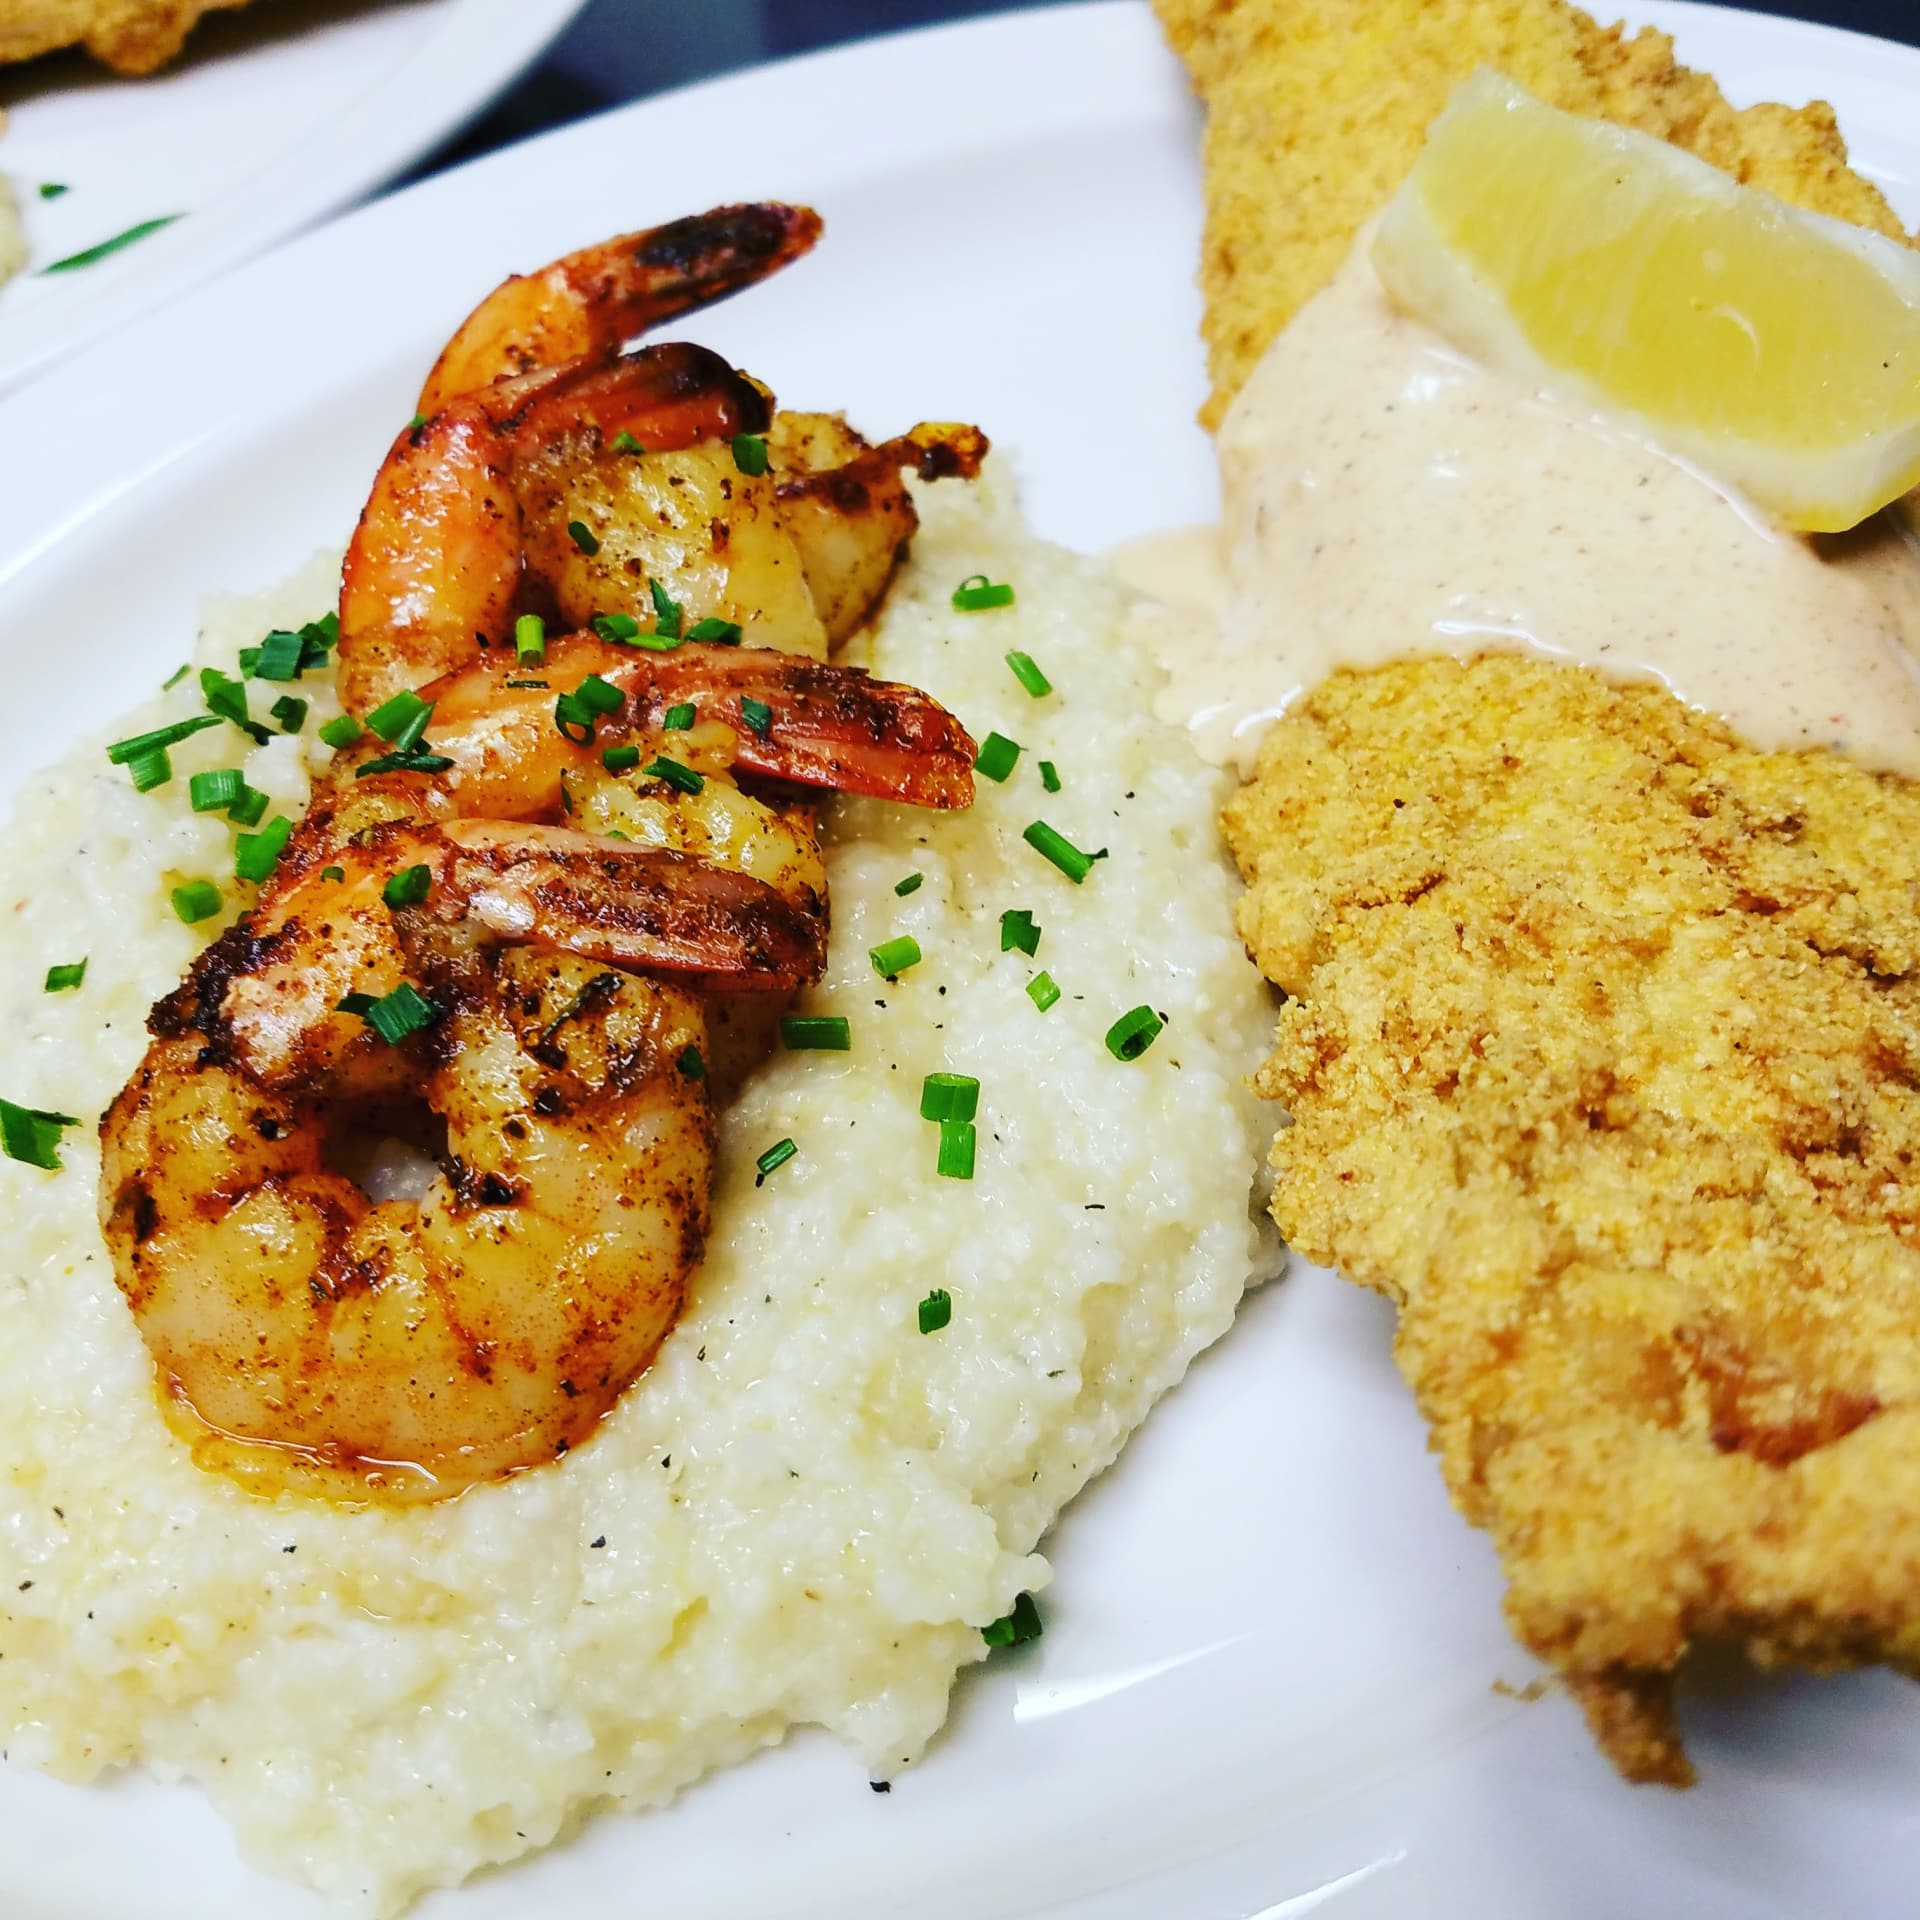 Cornmeal dipped Haddock with Shrimp and Cheesy Grits